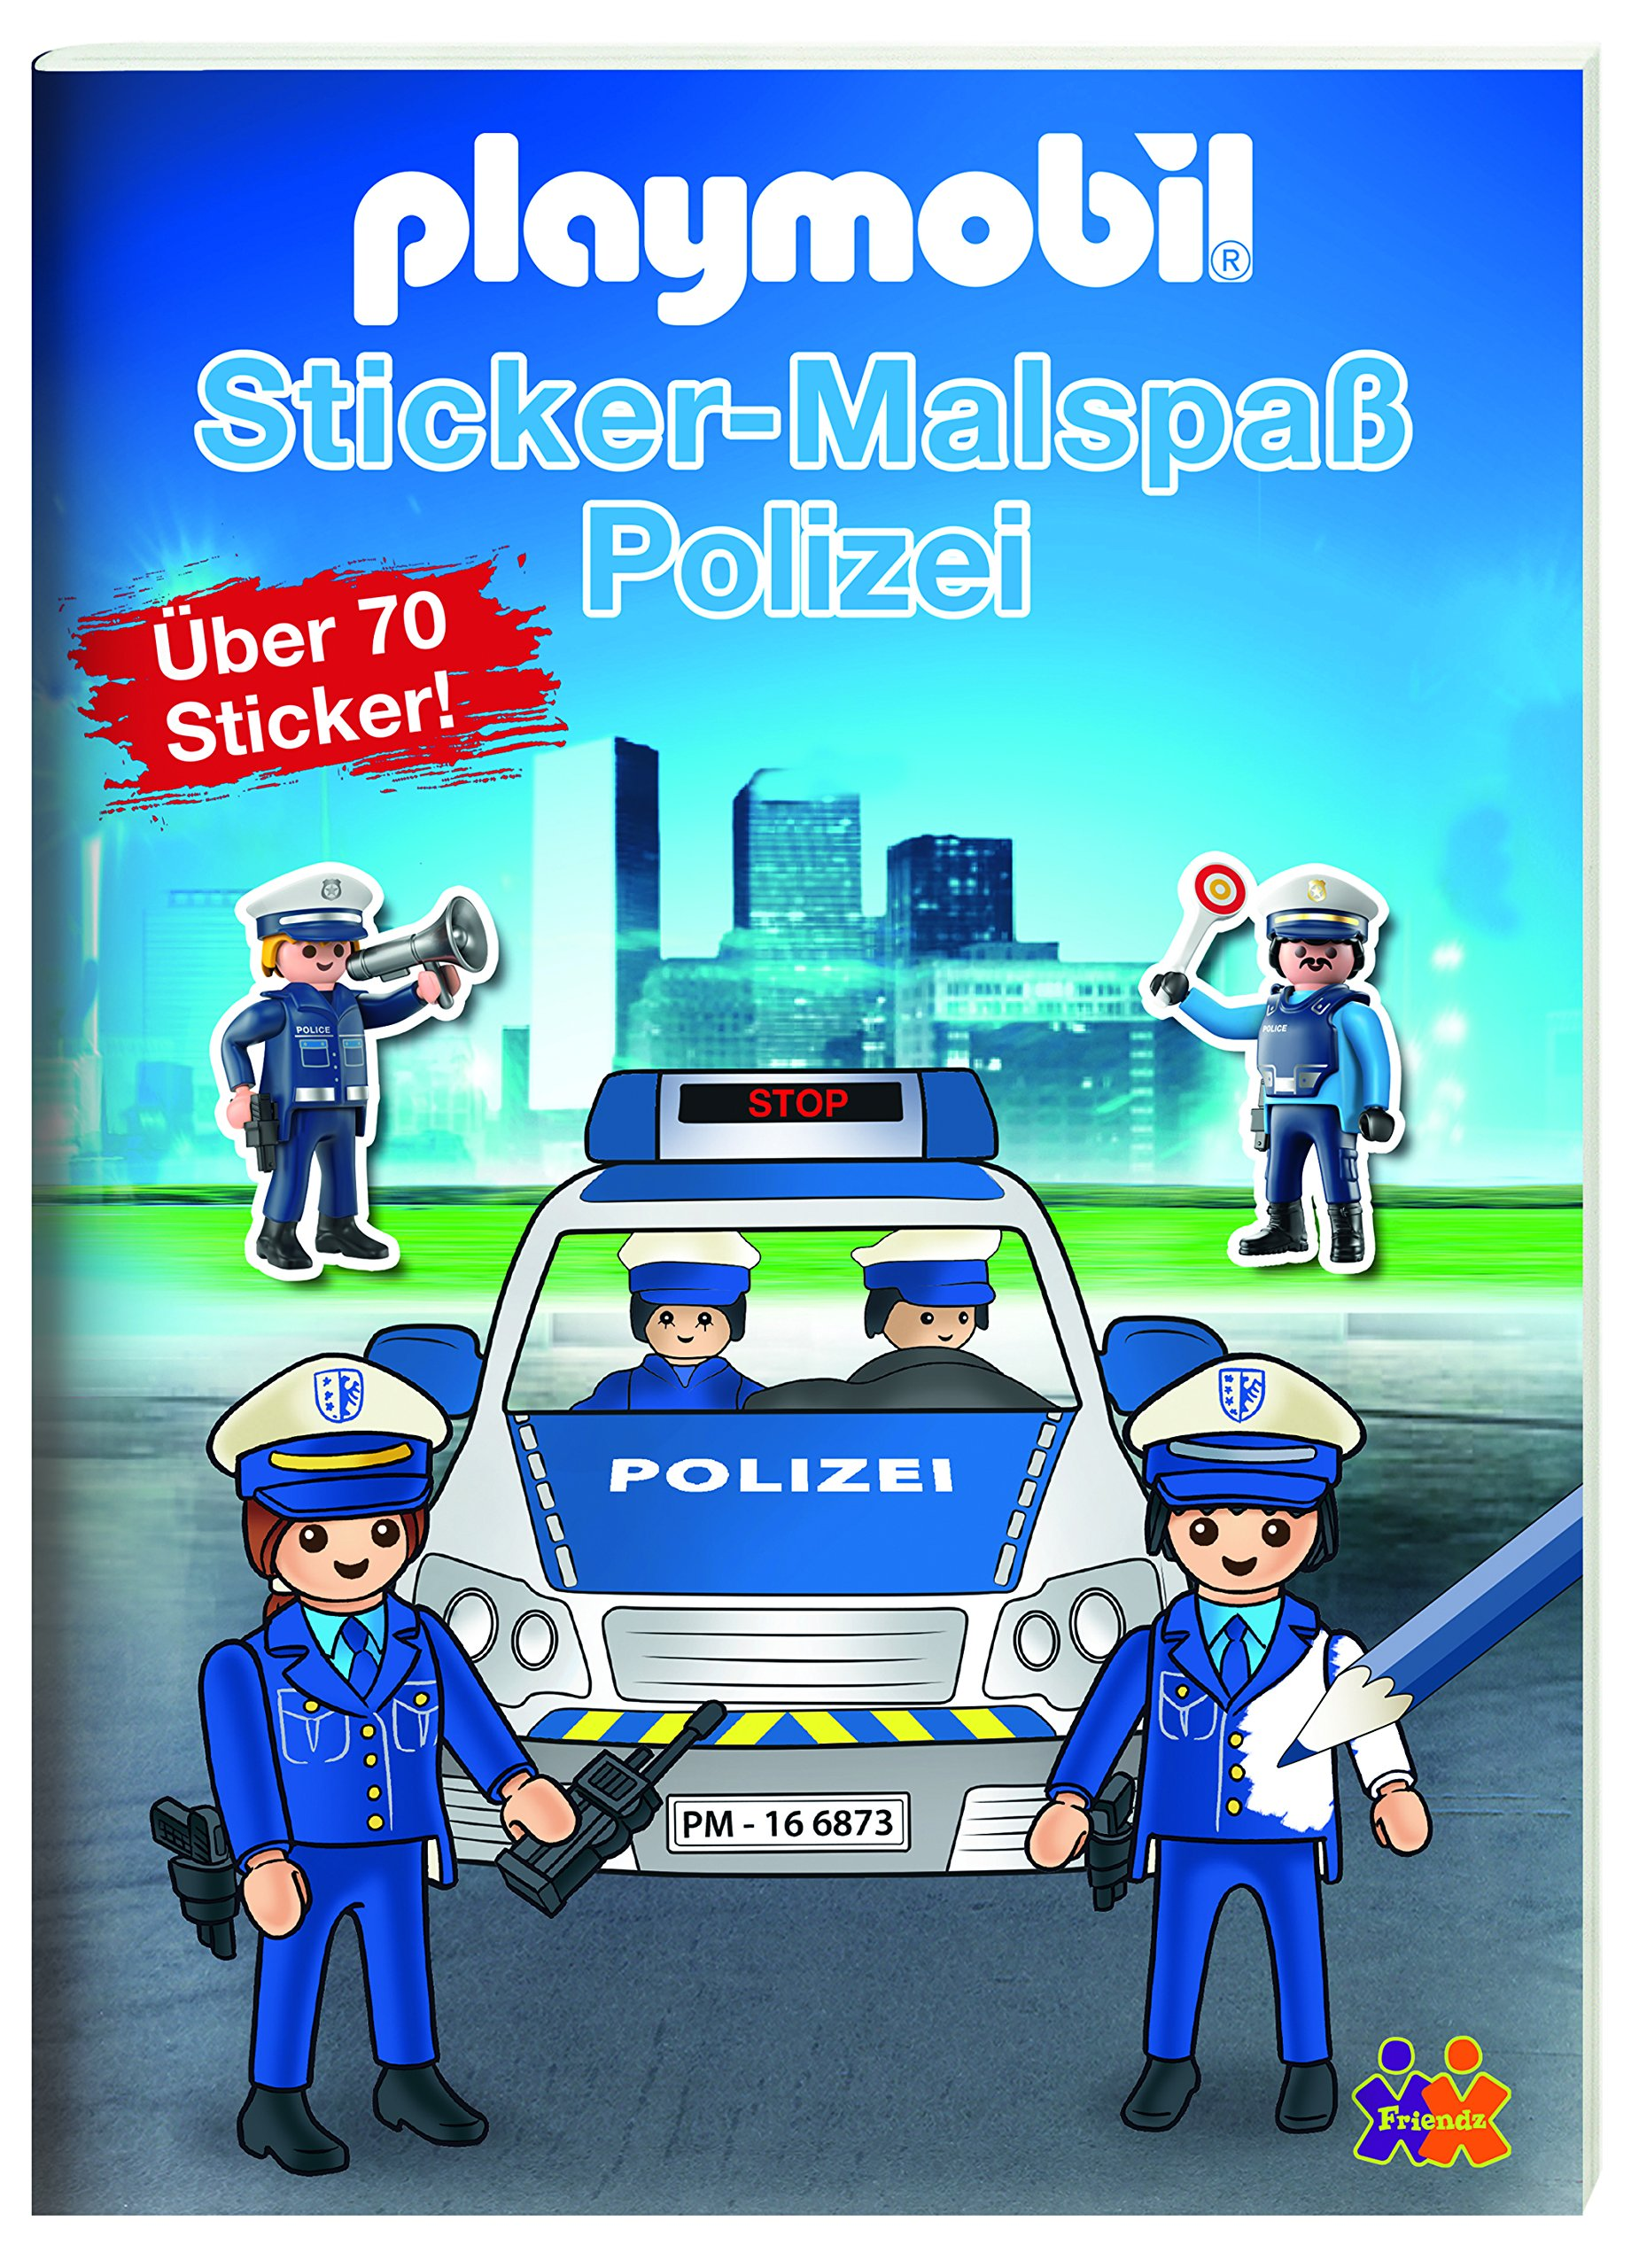 Playmobil. Mein Sticker-Malbuch Polizei: Amazon.de: Friendz @ Kids ...